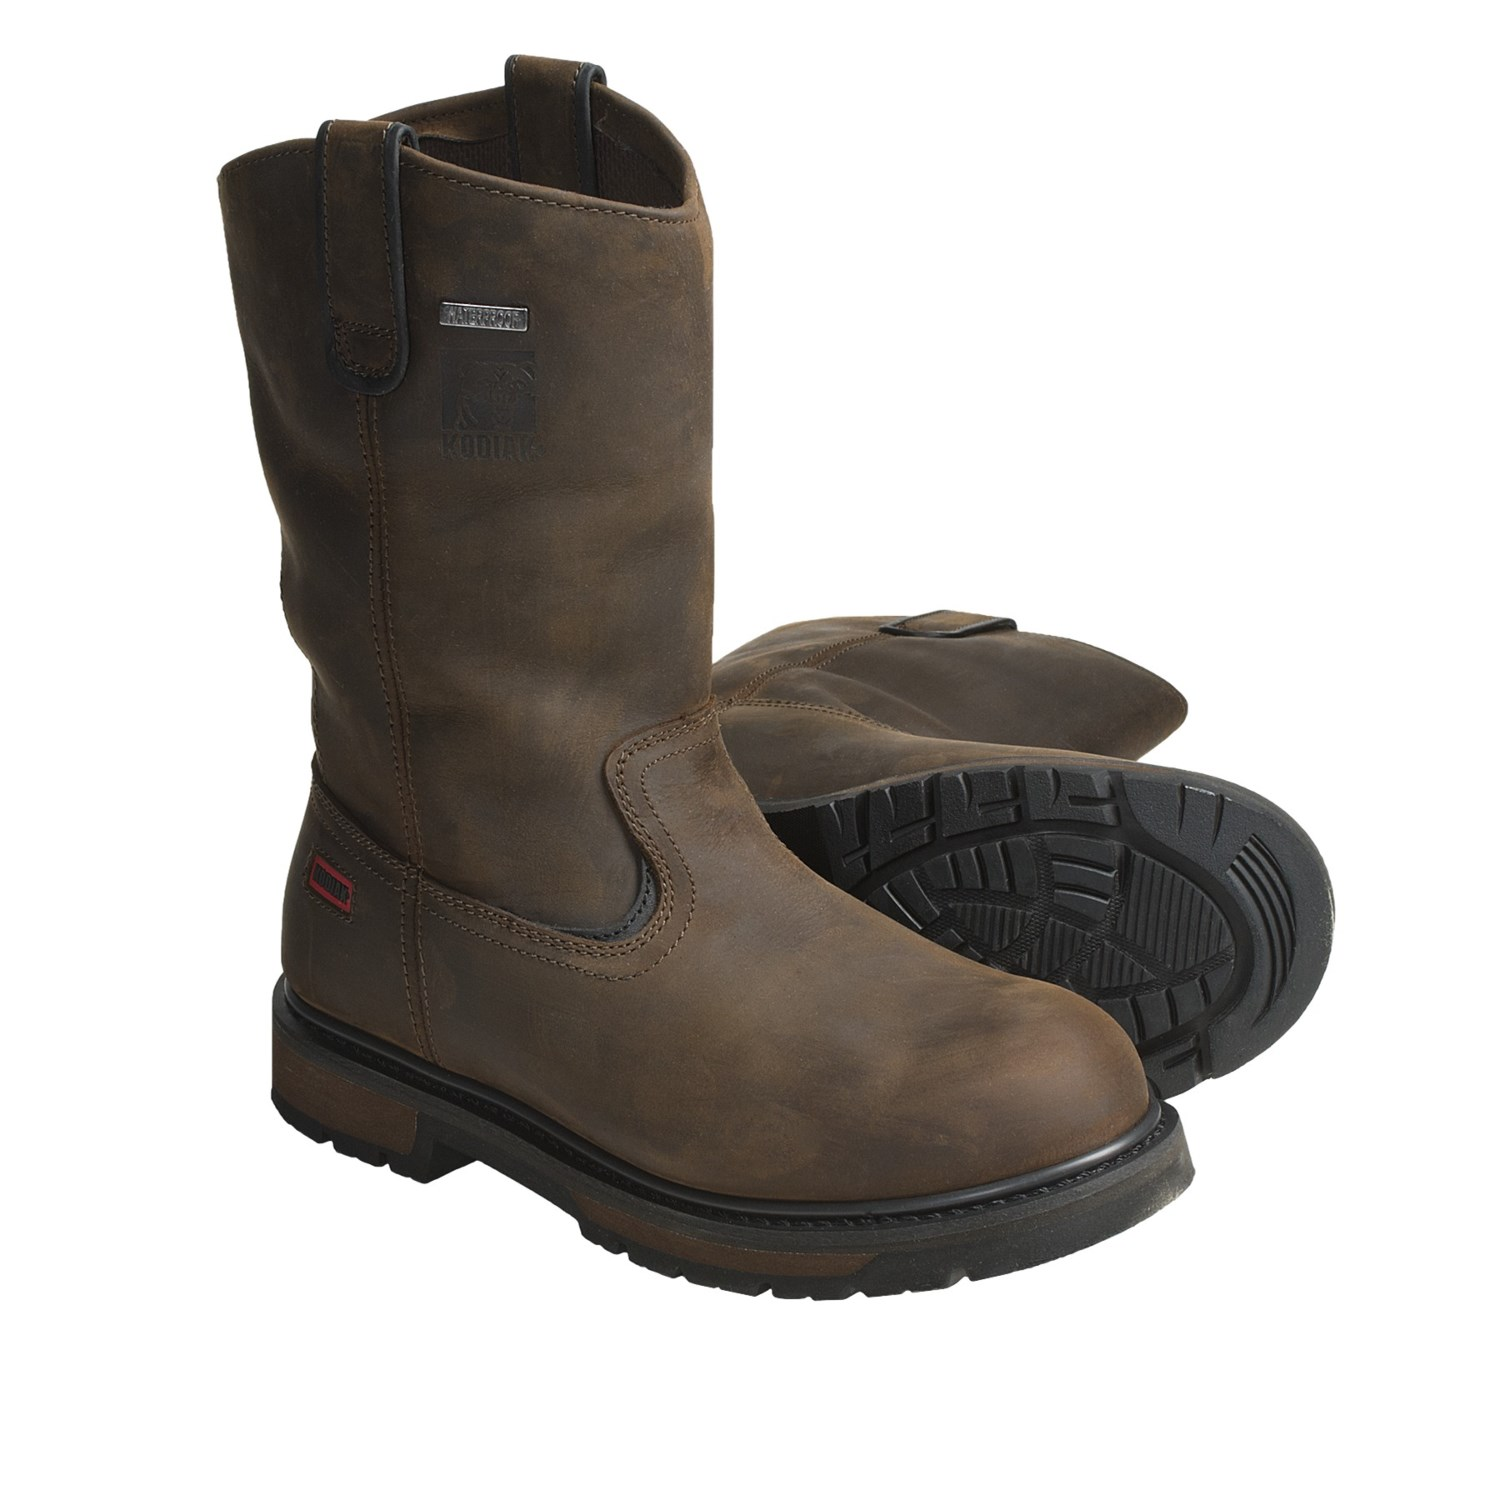 Shop Now For Wolverine Work Boots&Workwear | Bob's Stores. Welcome: Login/Register Gift Registry Rewards Help. Contact Us. Help Center. Find a Store; My Store: Select your favorite Bob's store WOLVERINE Men's Spencer Mid Boots, Wide Width $ WOLVERINE Men's Spencer Mid Boots, Medium Width $ WOLVERINE Men's Bucksaw Bonded Shirt Jacket.